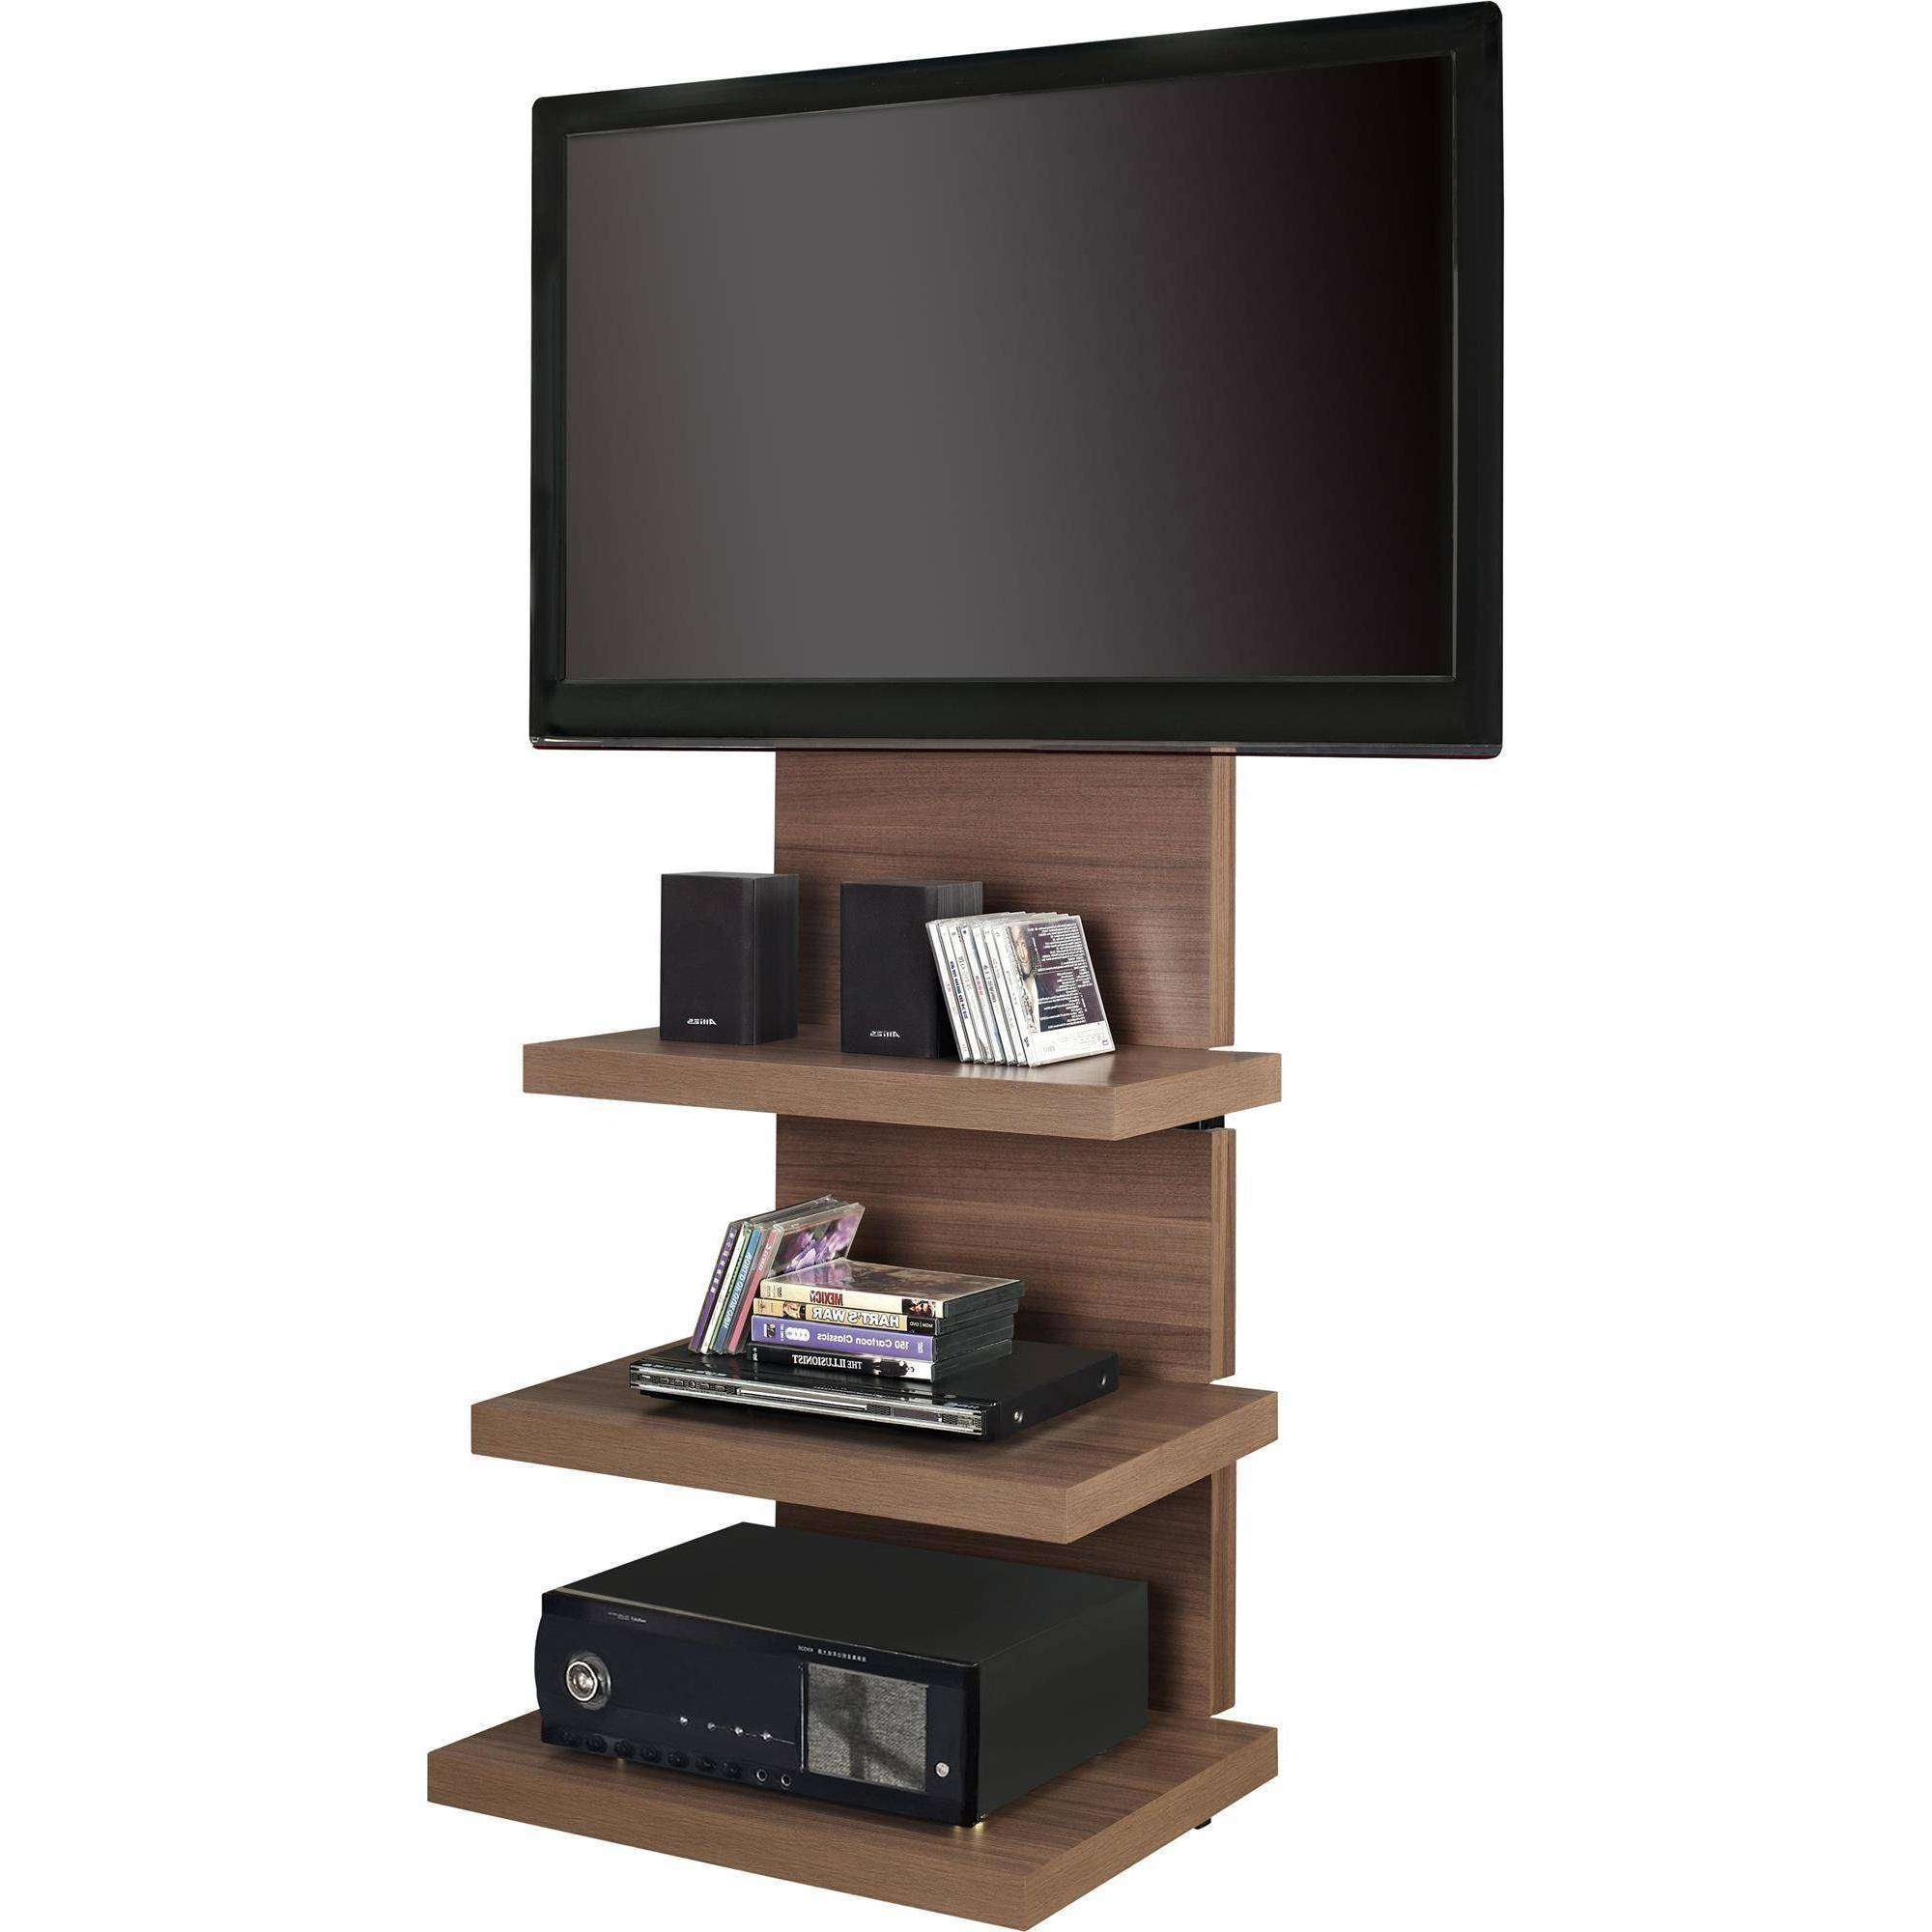 Table : Amazing Wall Mount Adjustable Tv Stands Ameriwood Home Within Wall Mount Adjustable Tv Stands (View 3 of 20)